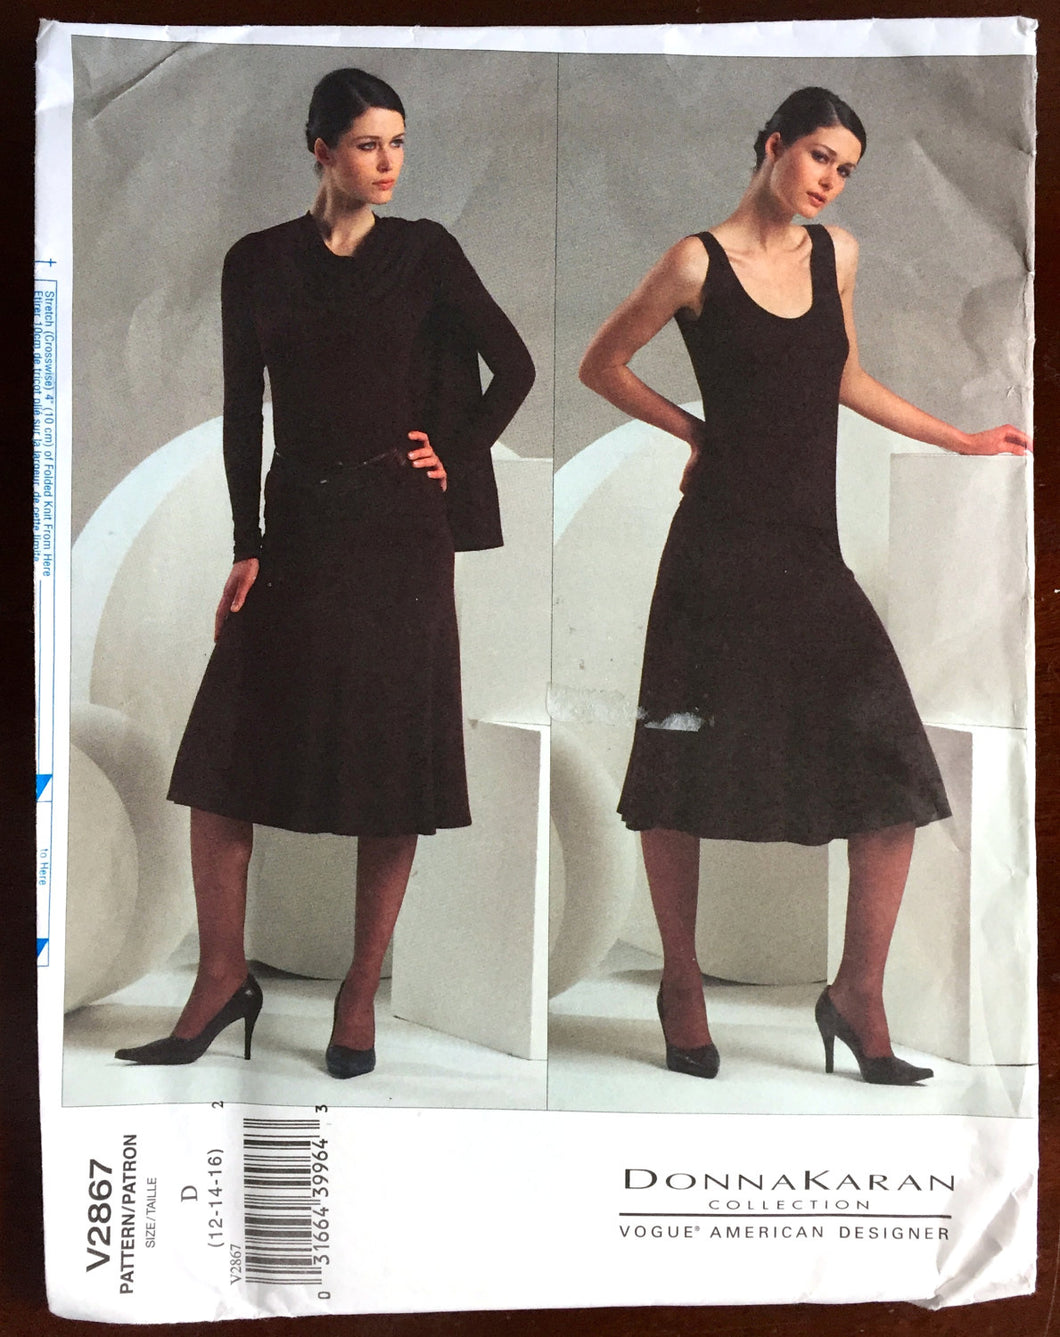 2005 Vogue American Designer Donna Karan Shrug, Top and Skirt Pattern - Bust 34